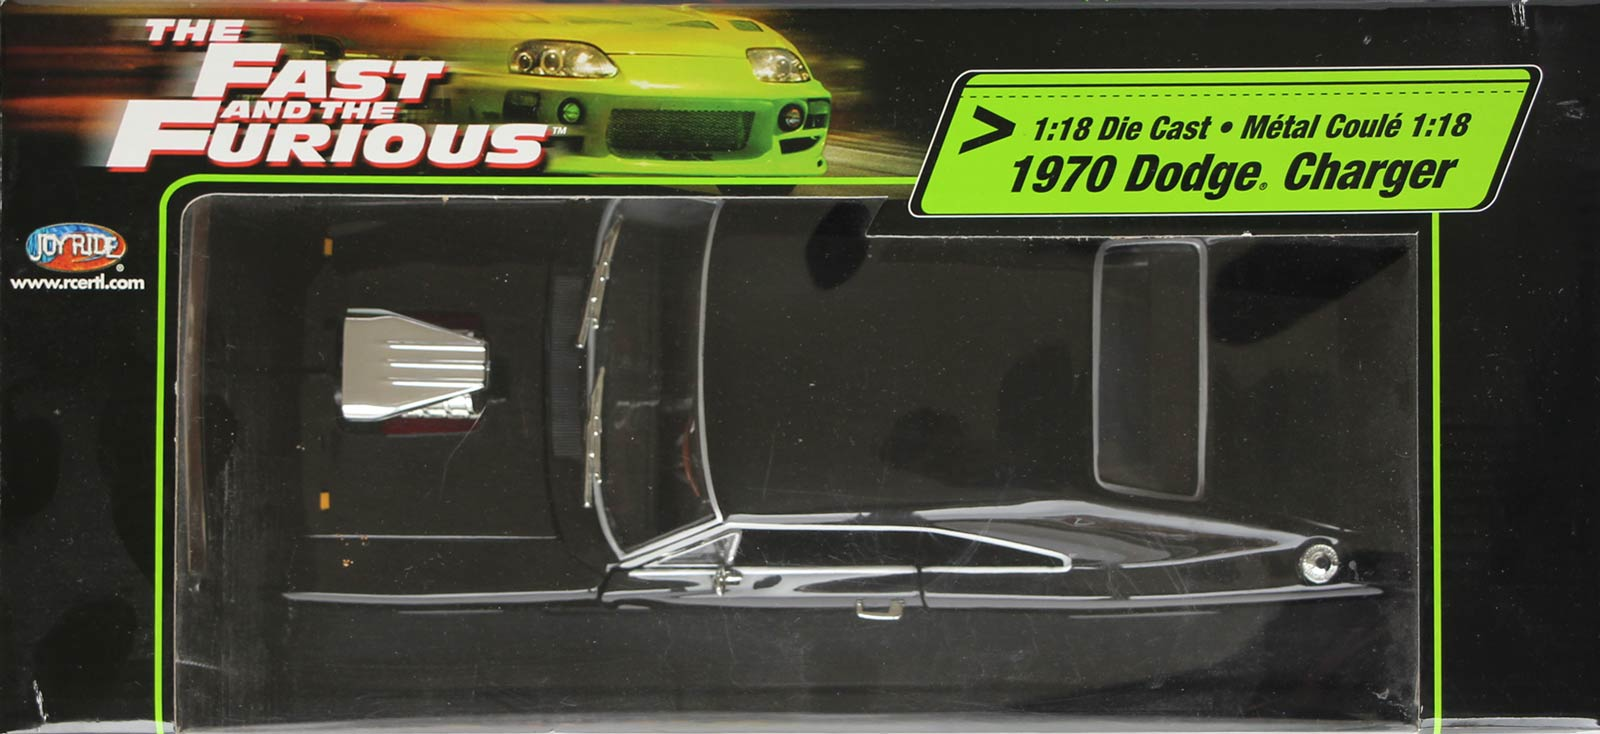 Desssus du packaging de la Dodge Charger Fast Furious 1/18 Joyride